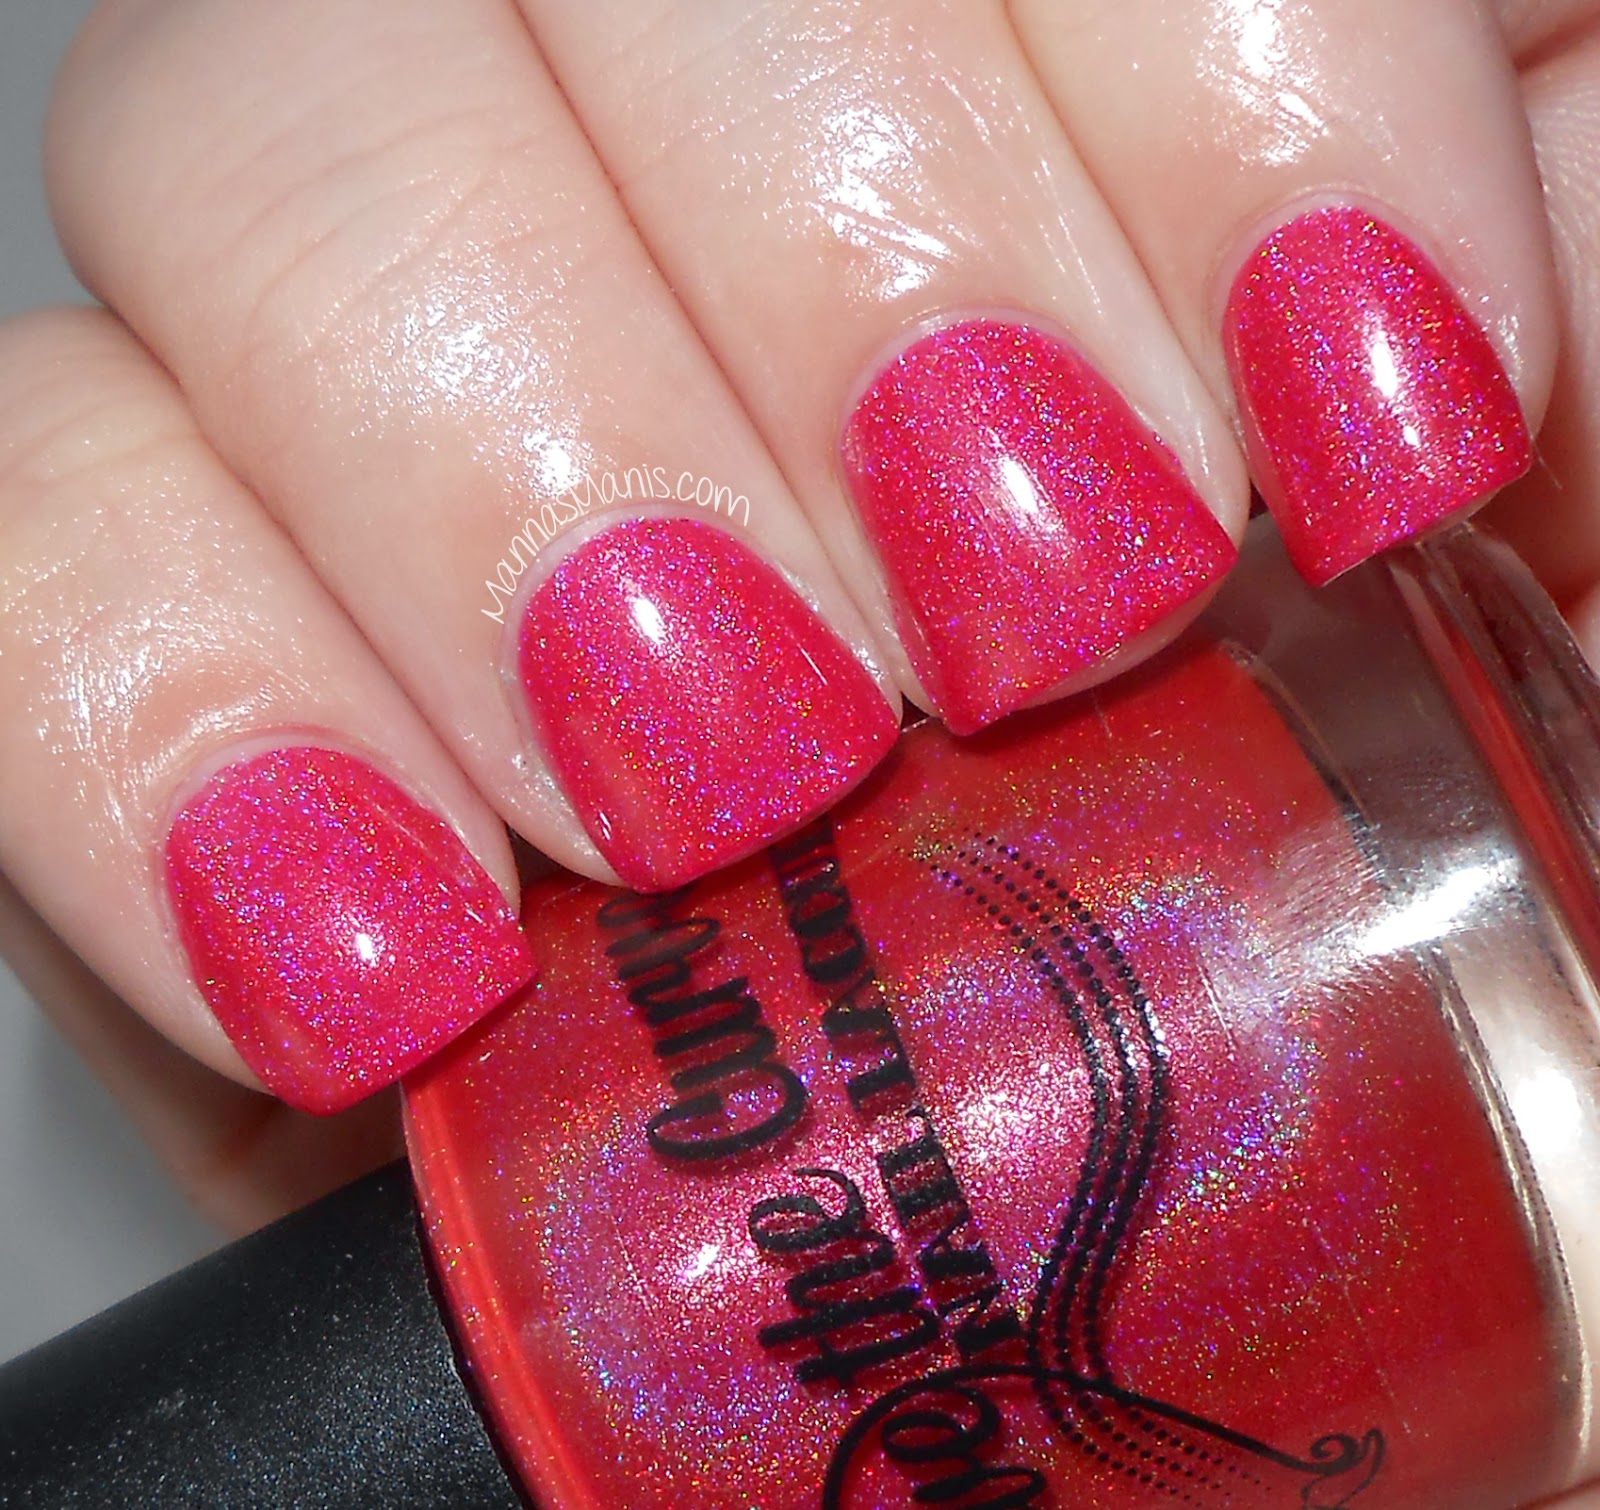 above the curve watermelon, red jelly indie nail polish